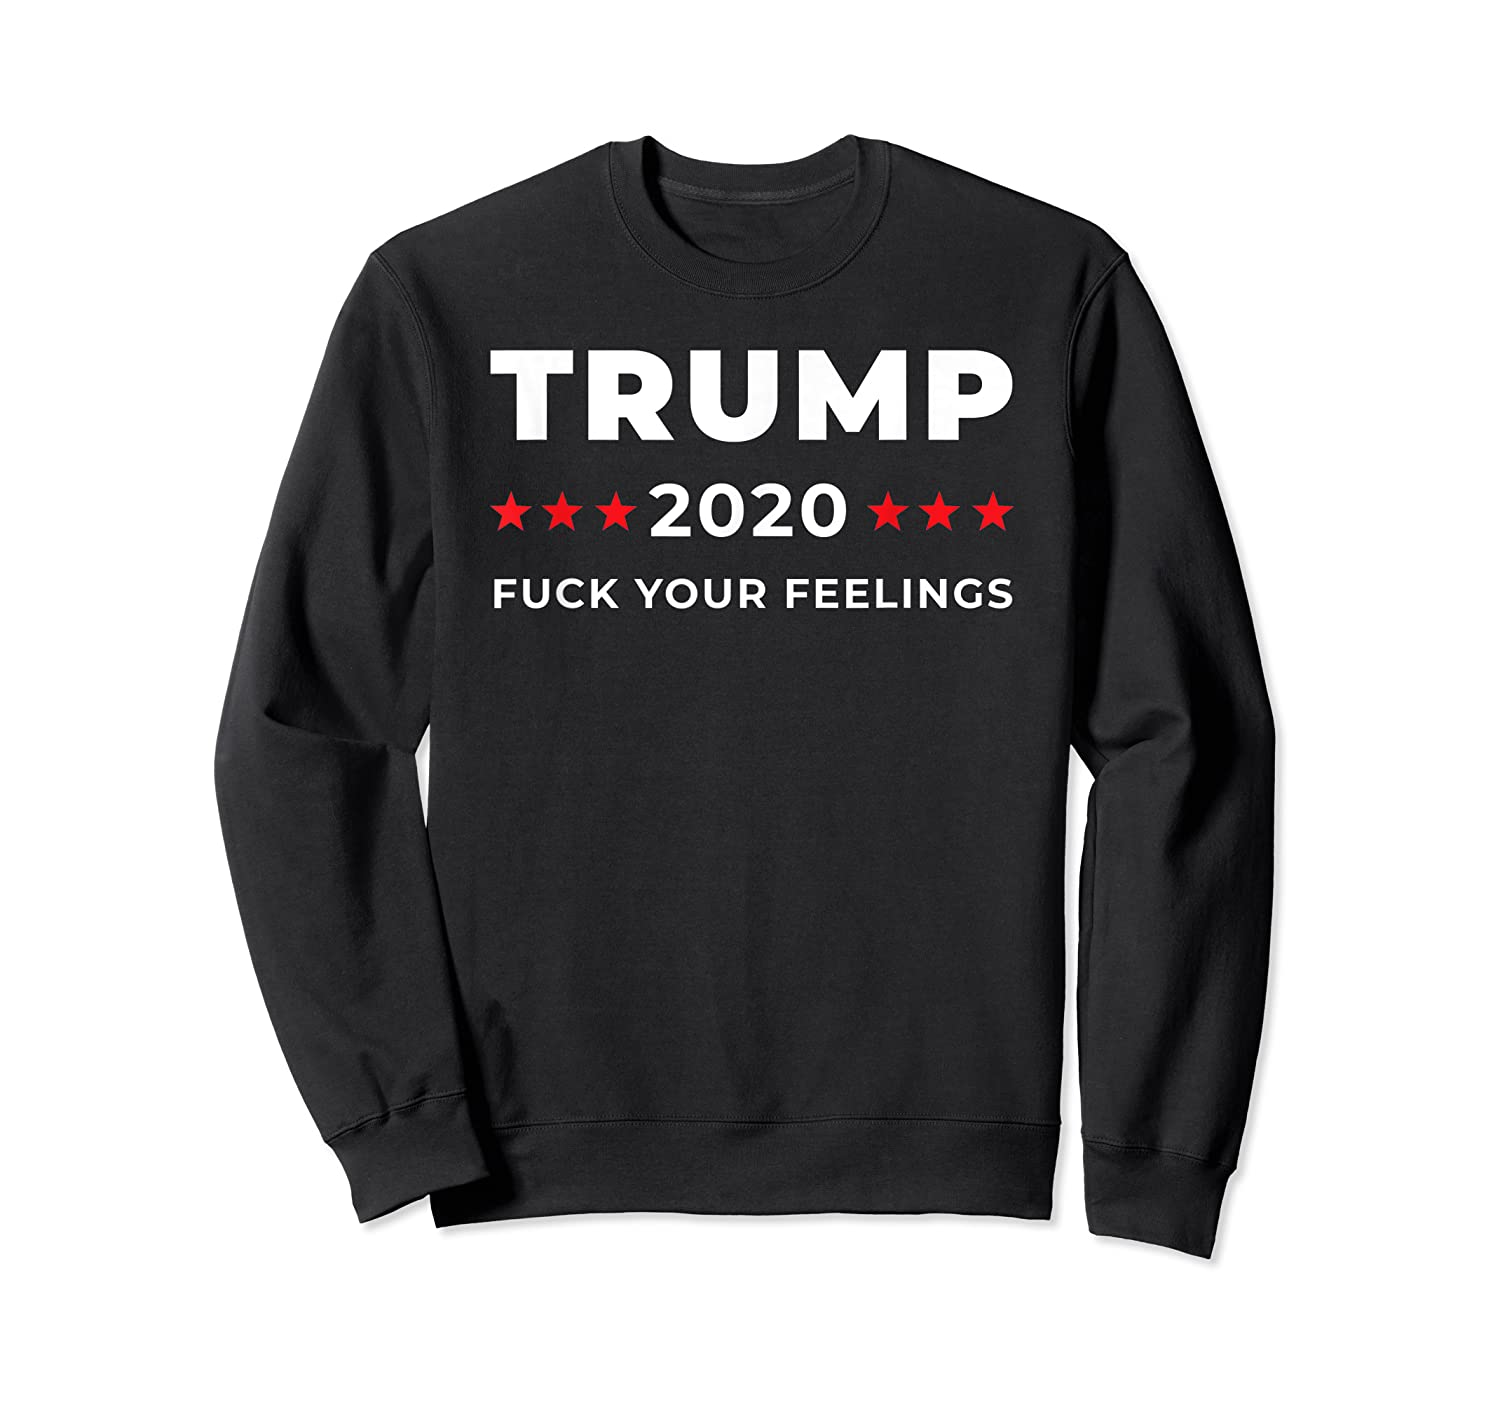 Trump 2020 Fuck Your Feelngs Shirts Crewneck Sweater